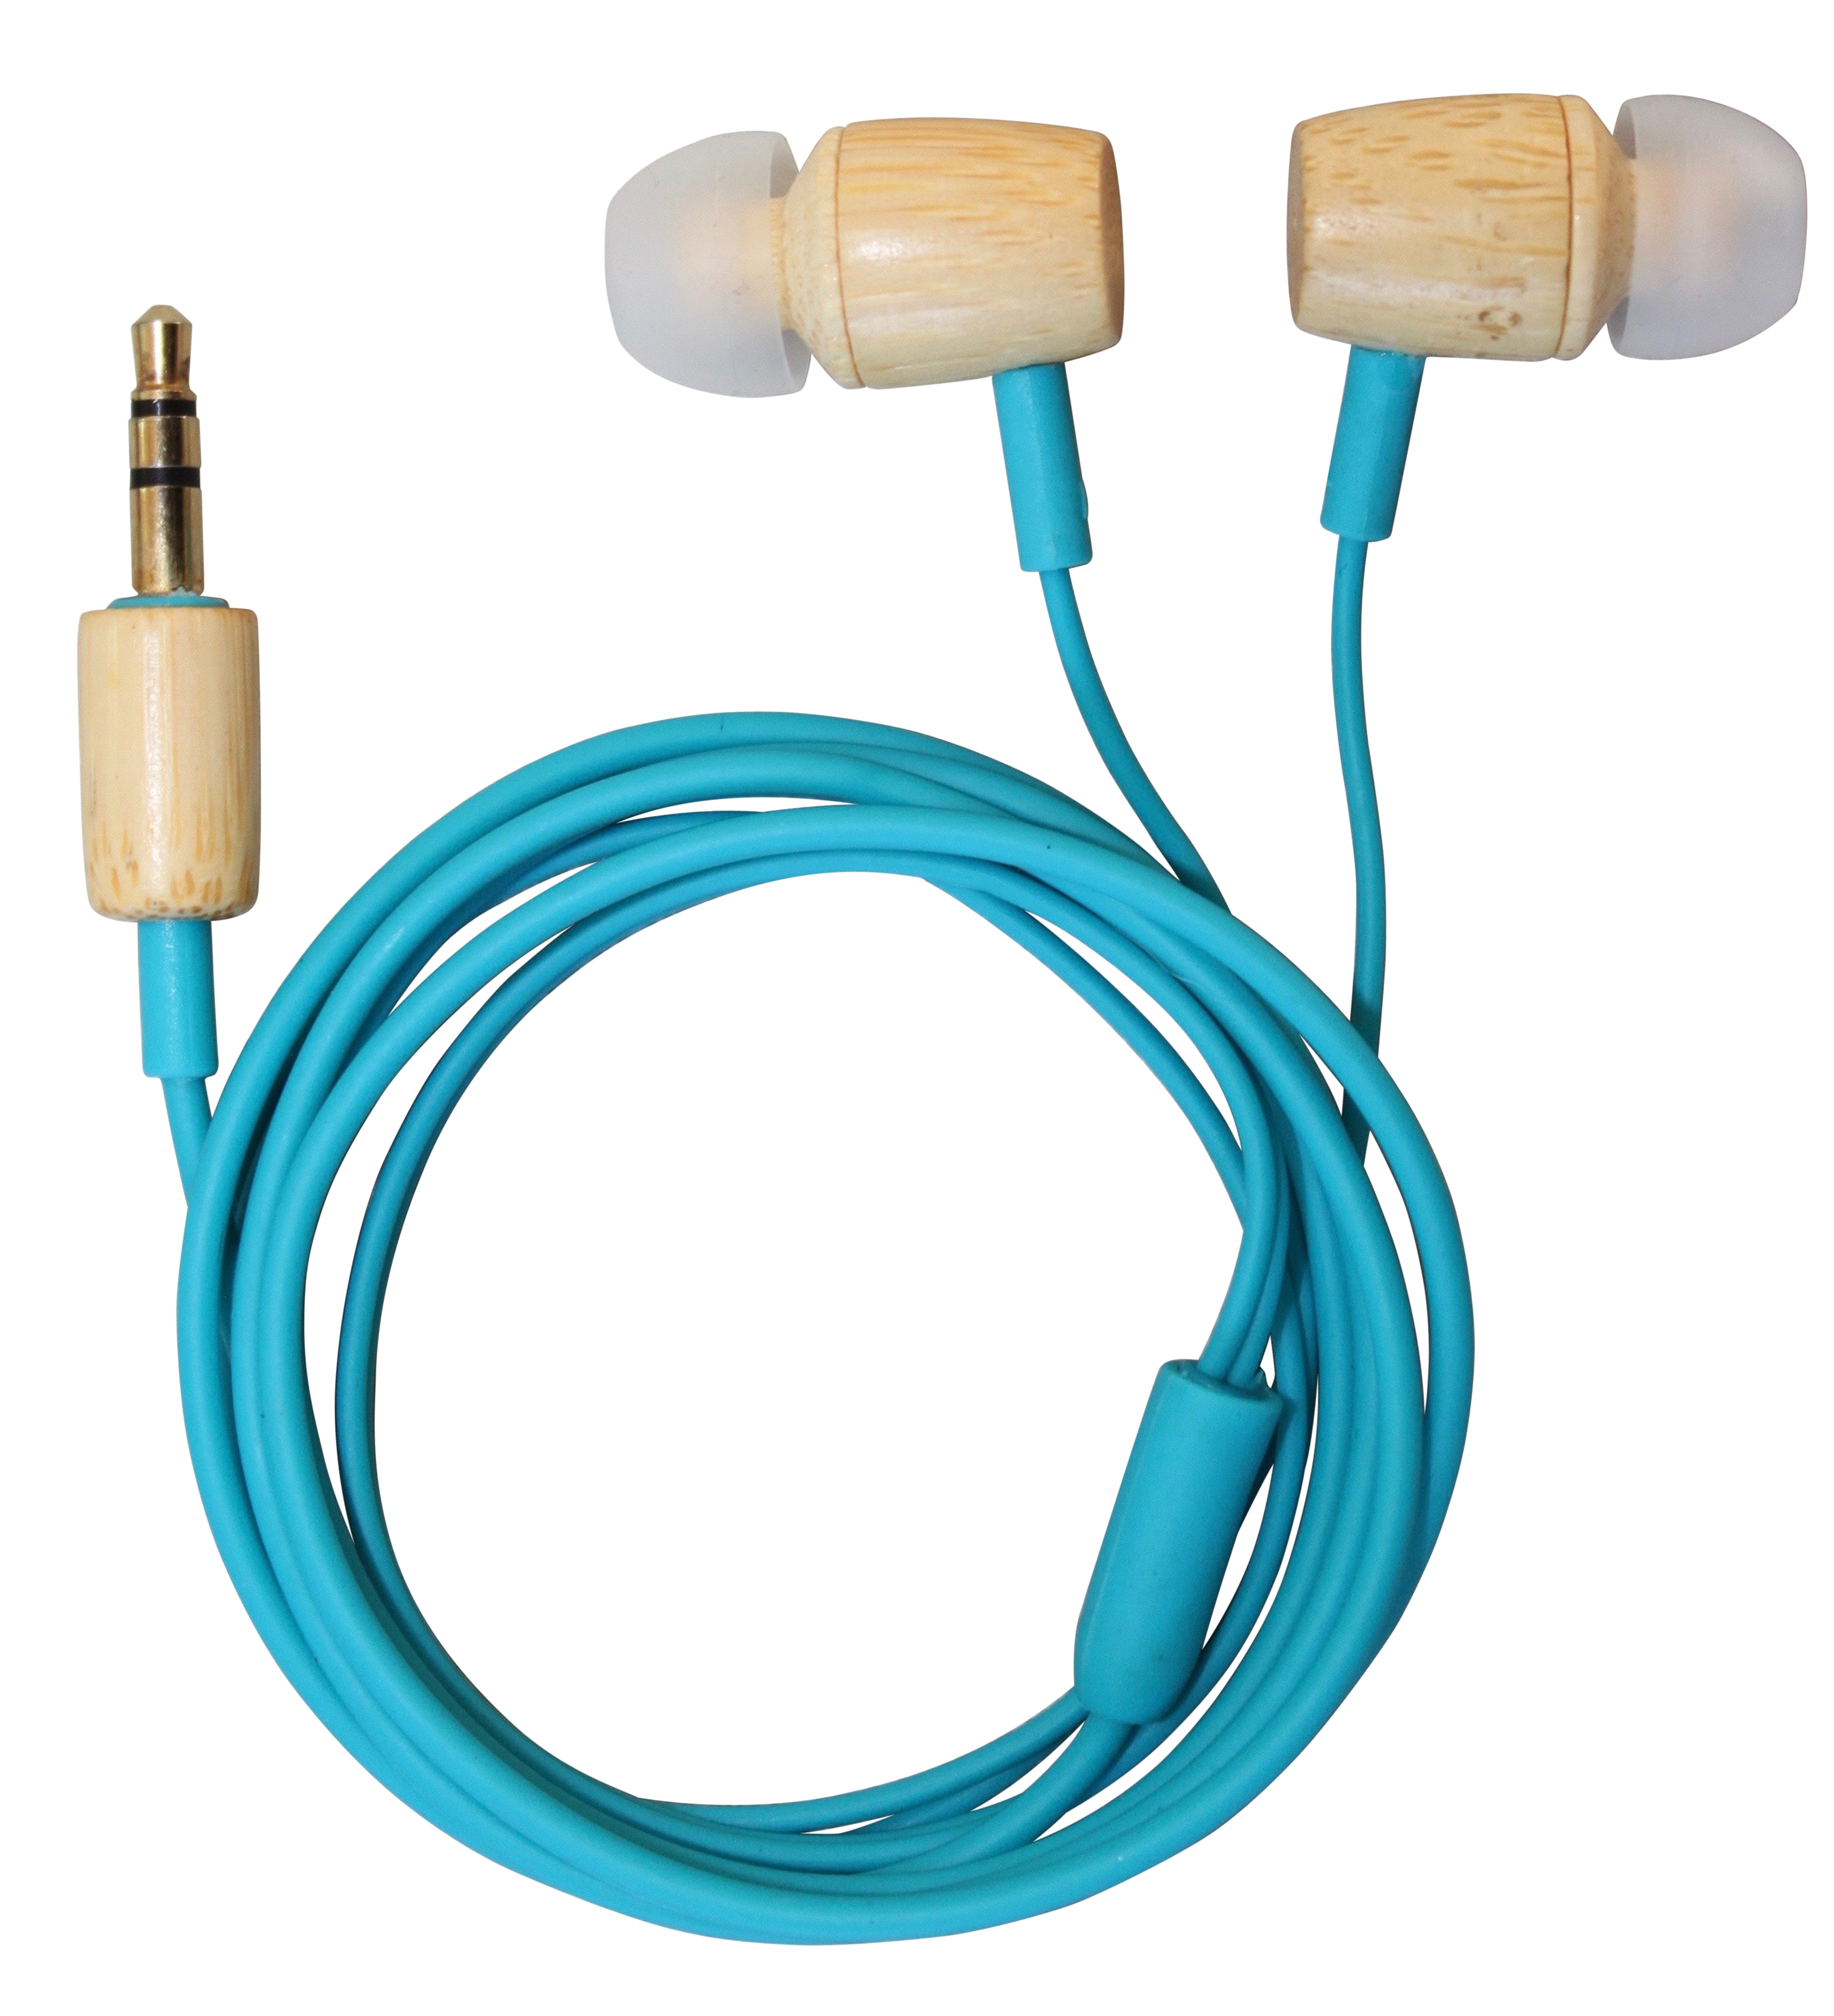 Bio Buds Headphones